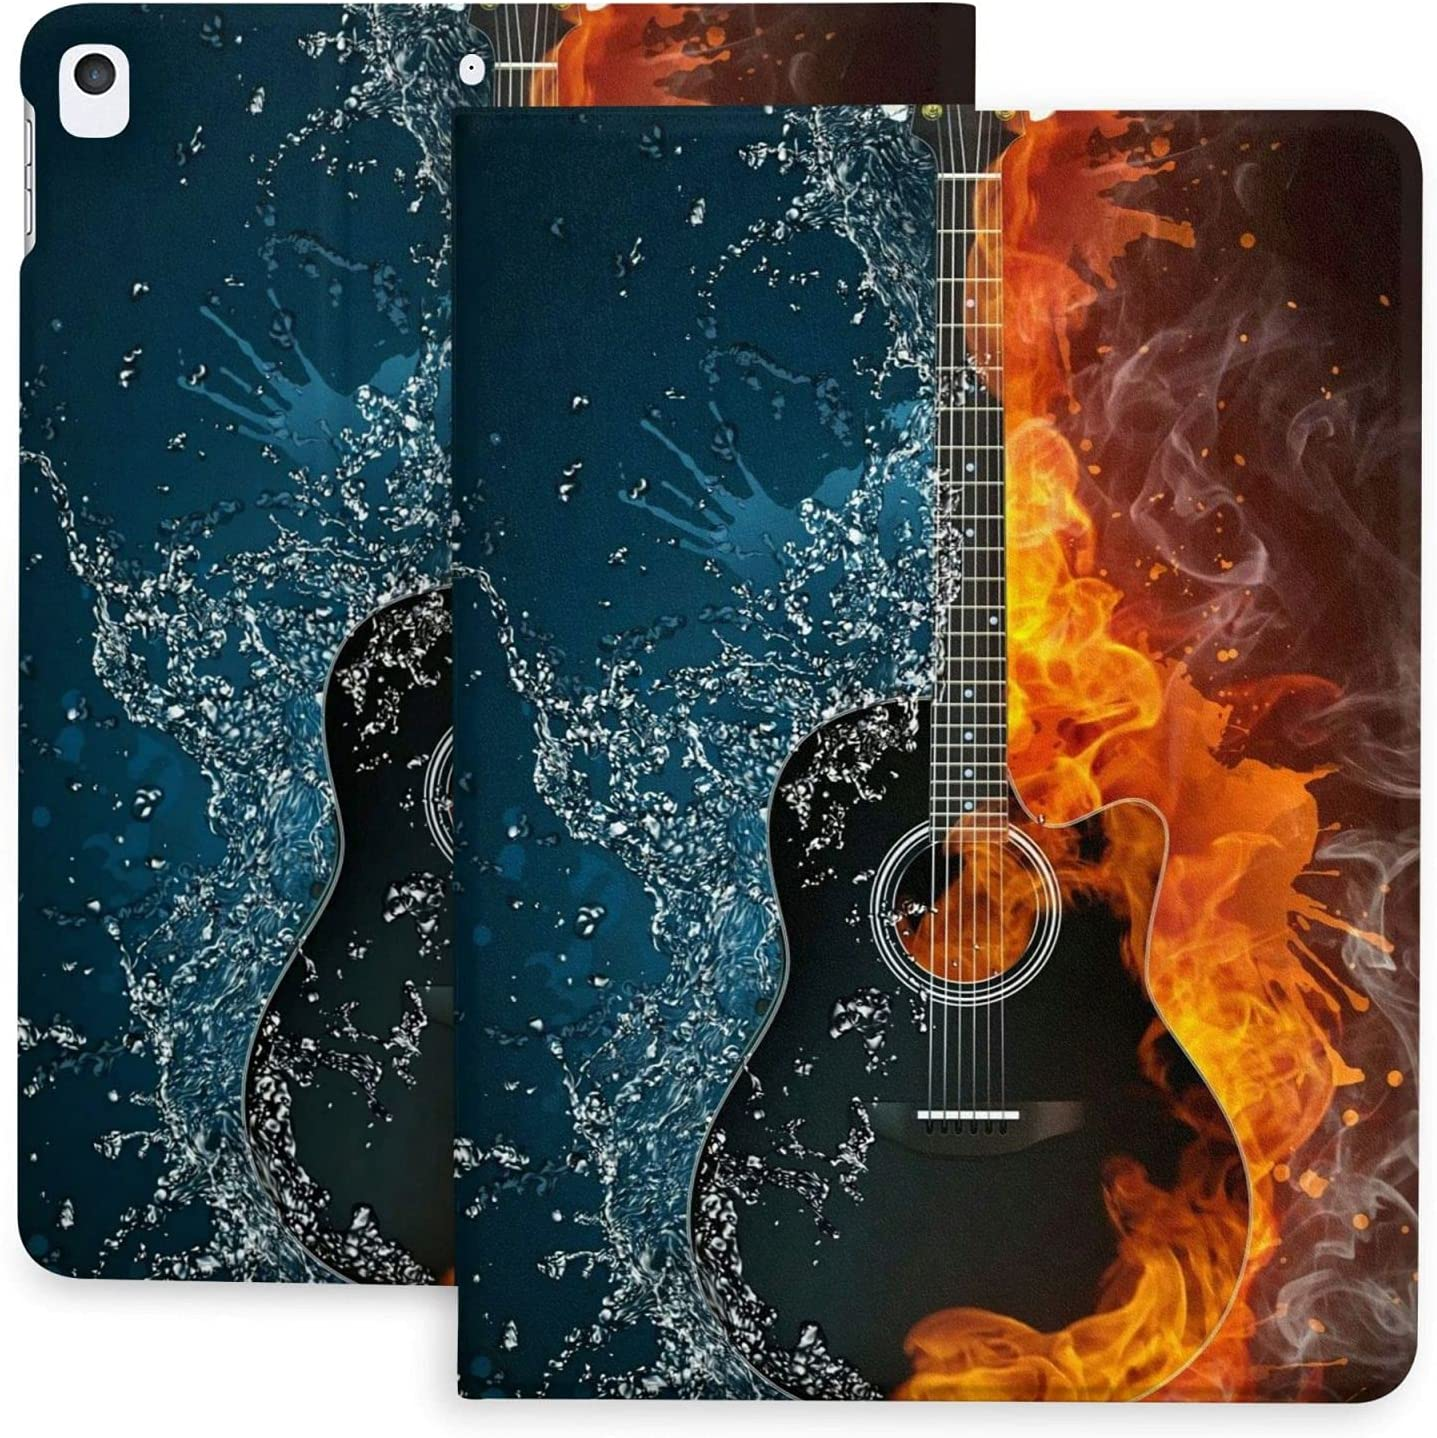 Super intense SALE Unique Electric Guitar Omaha Mall in Fire and 2020 Pad Case Funny Water